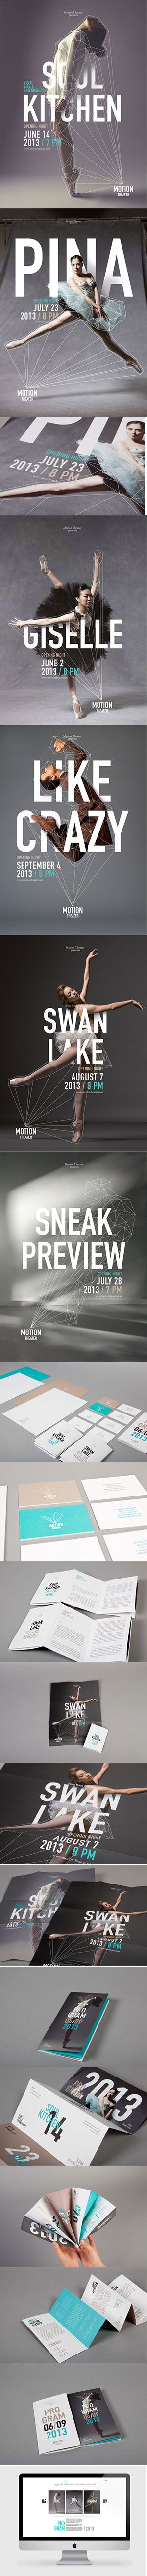 Motion Theater promotion design: flyer, Poster, Homepage | typography